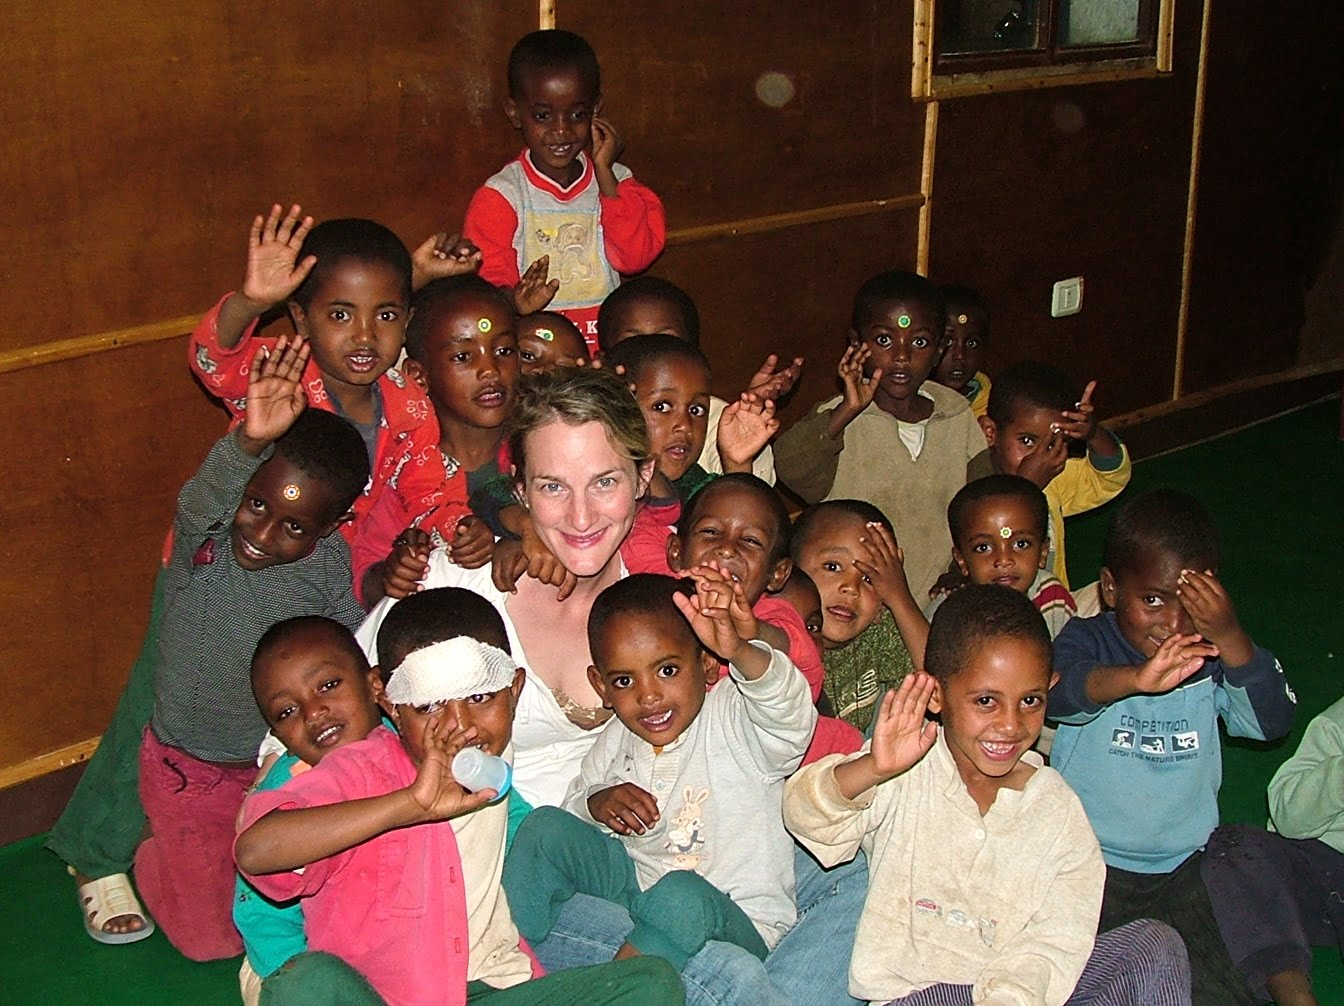 Israelis Bring ART Joy & Love To Ethiopian HIV Orphans